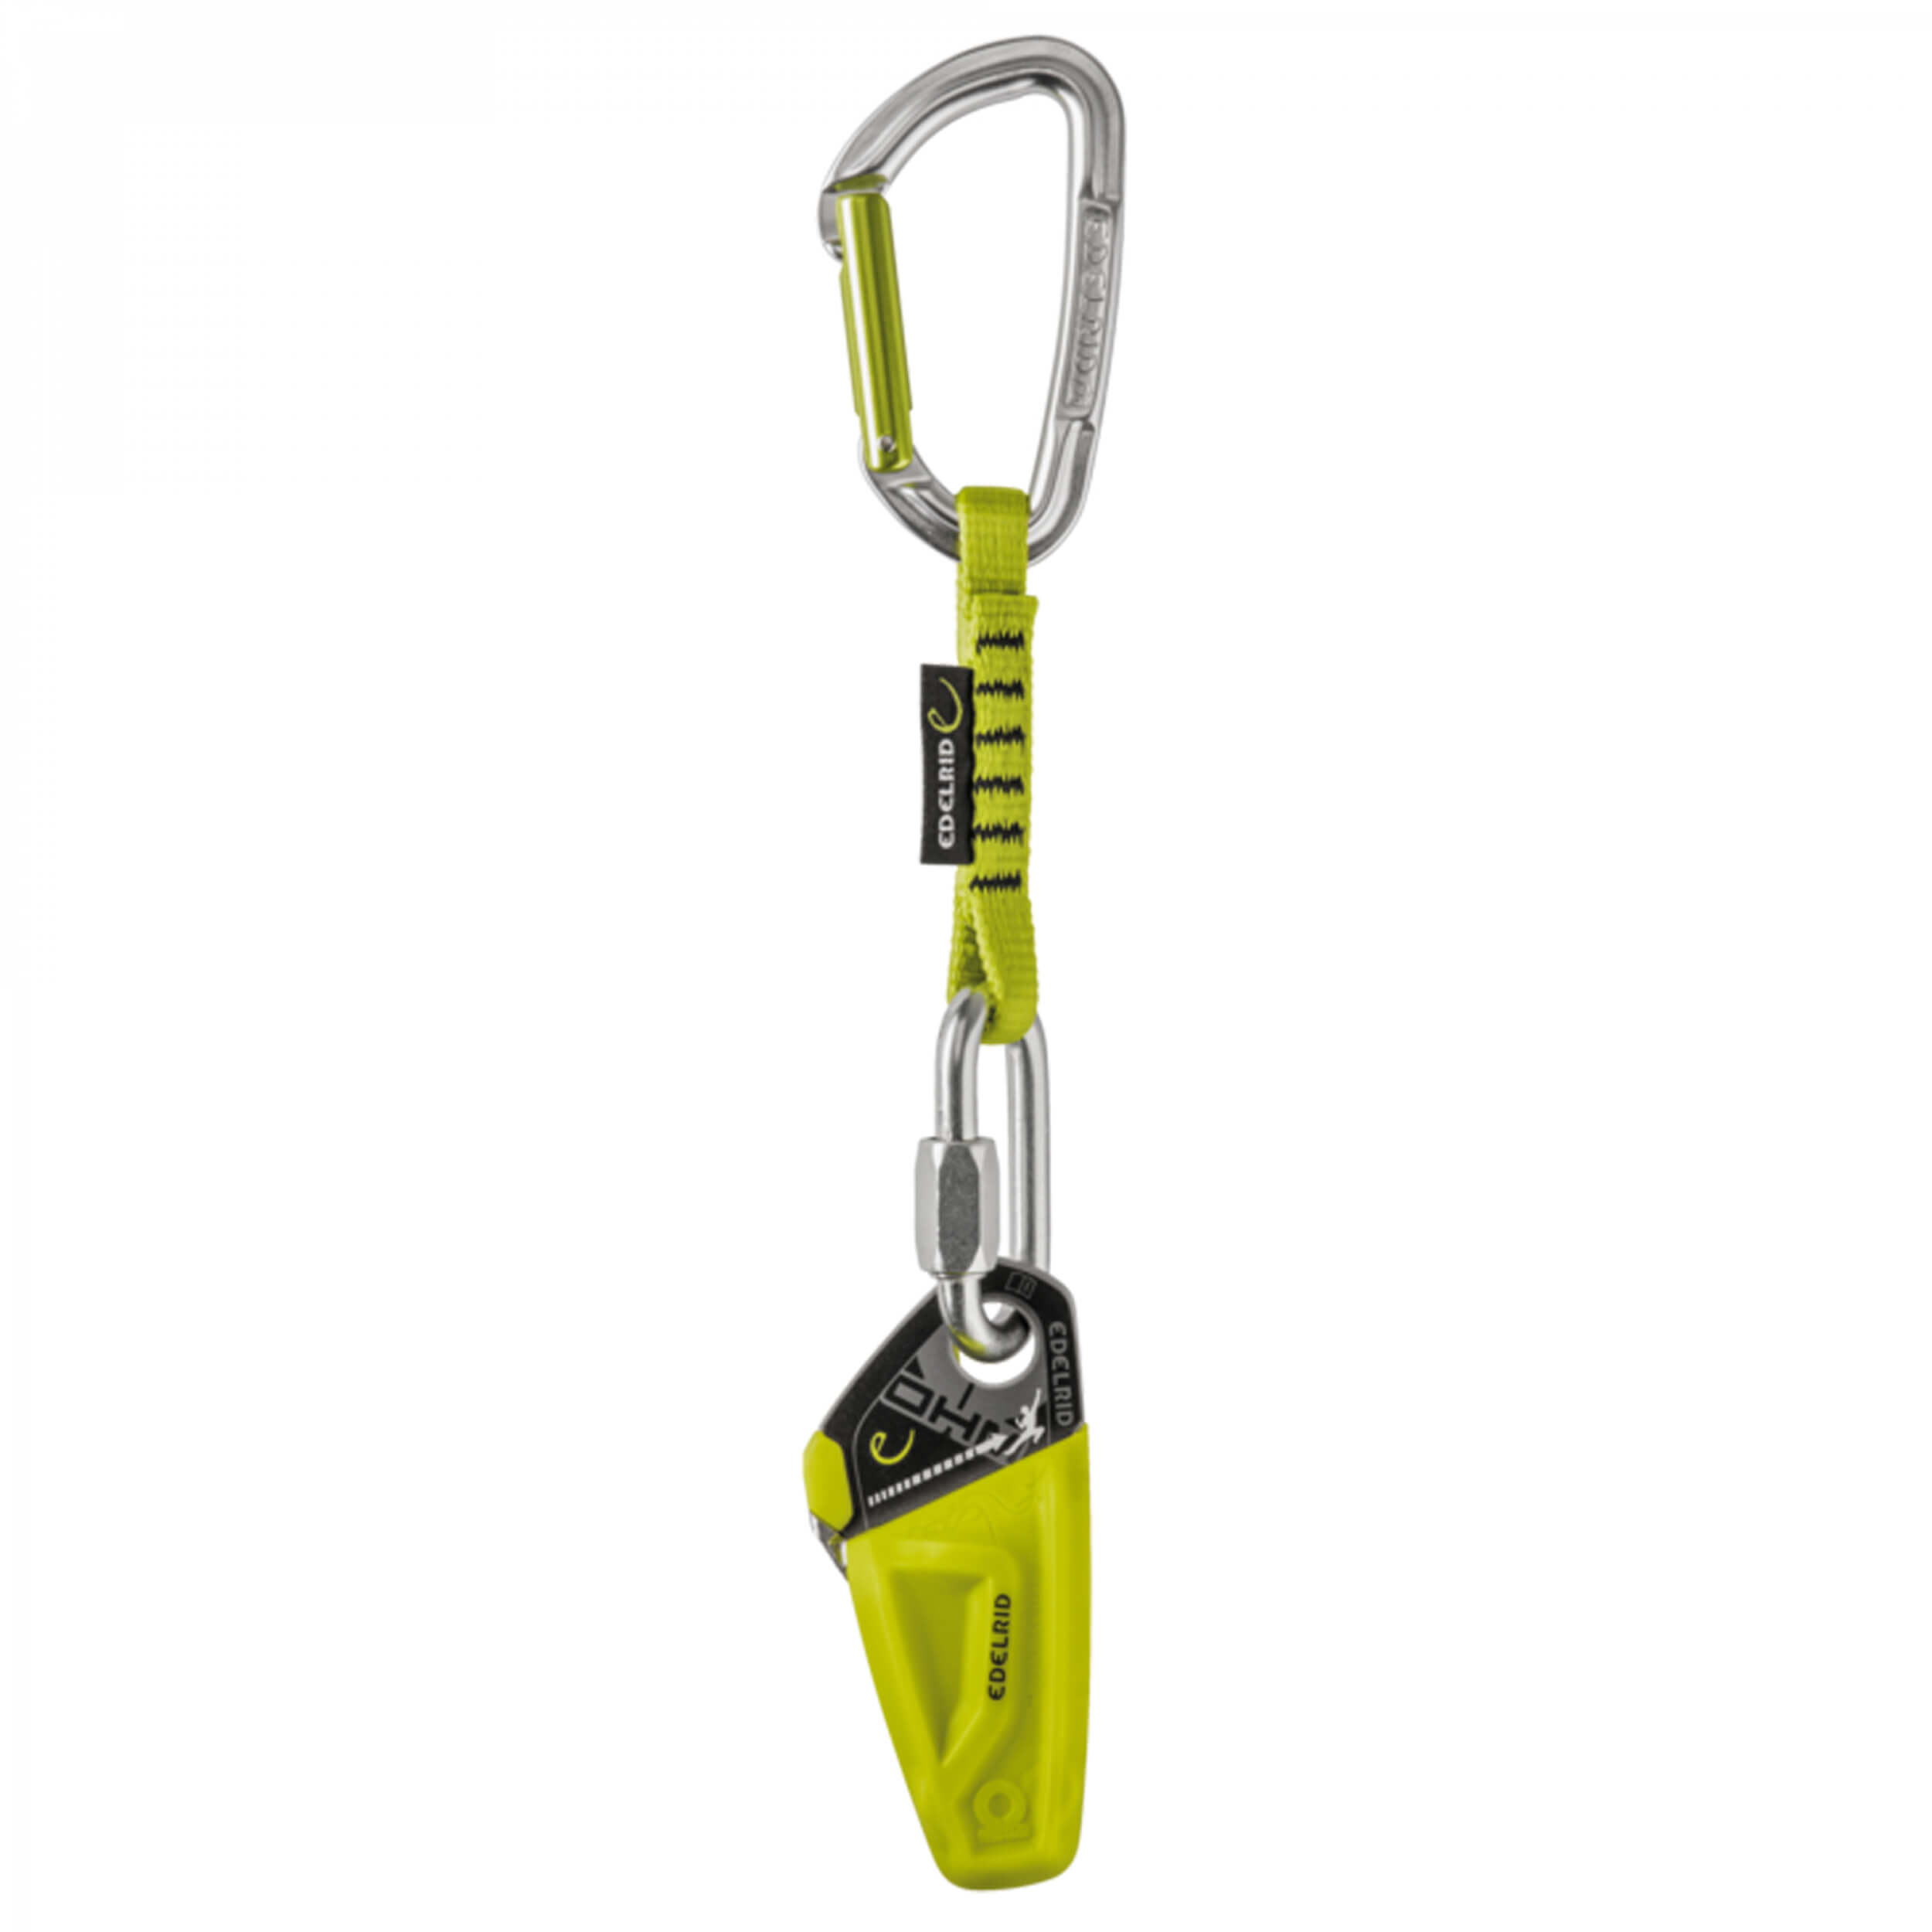 Edelrid Ohm oasis